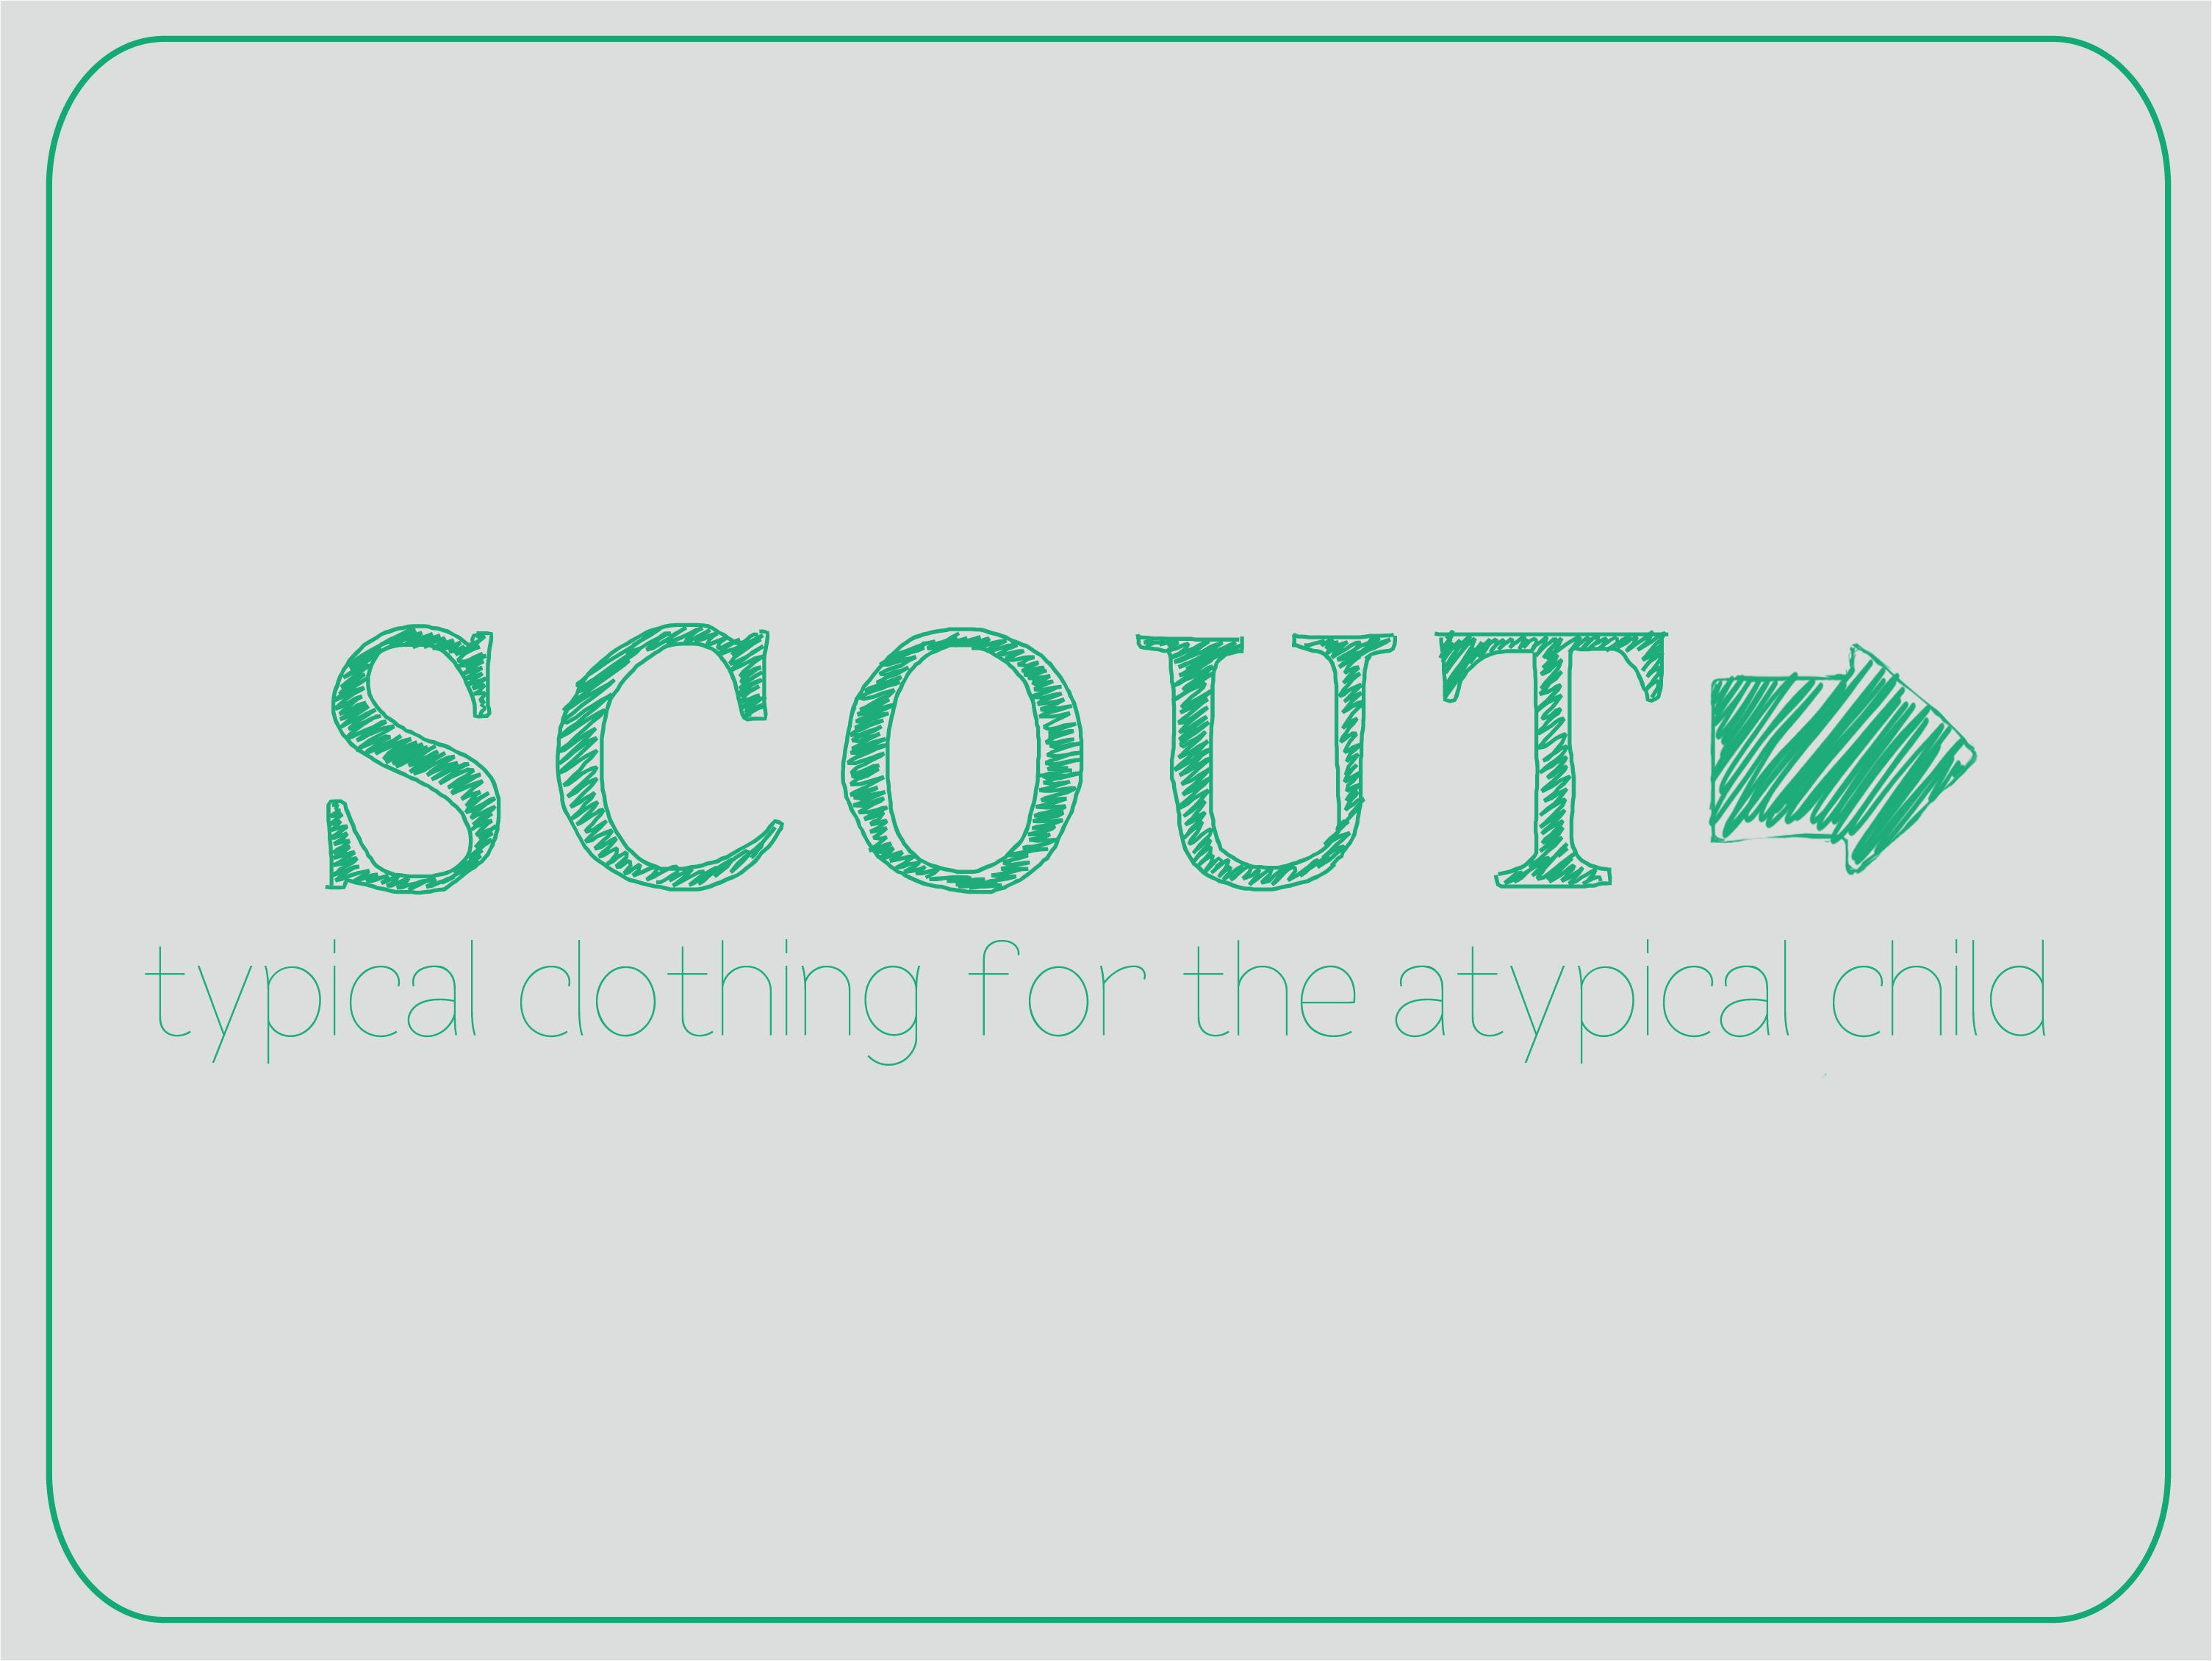 SCOUT clothing - image 1 - student project